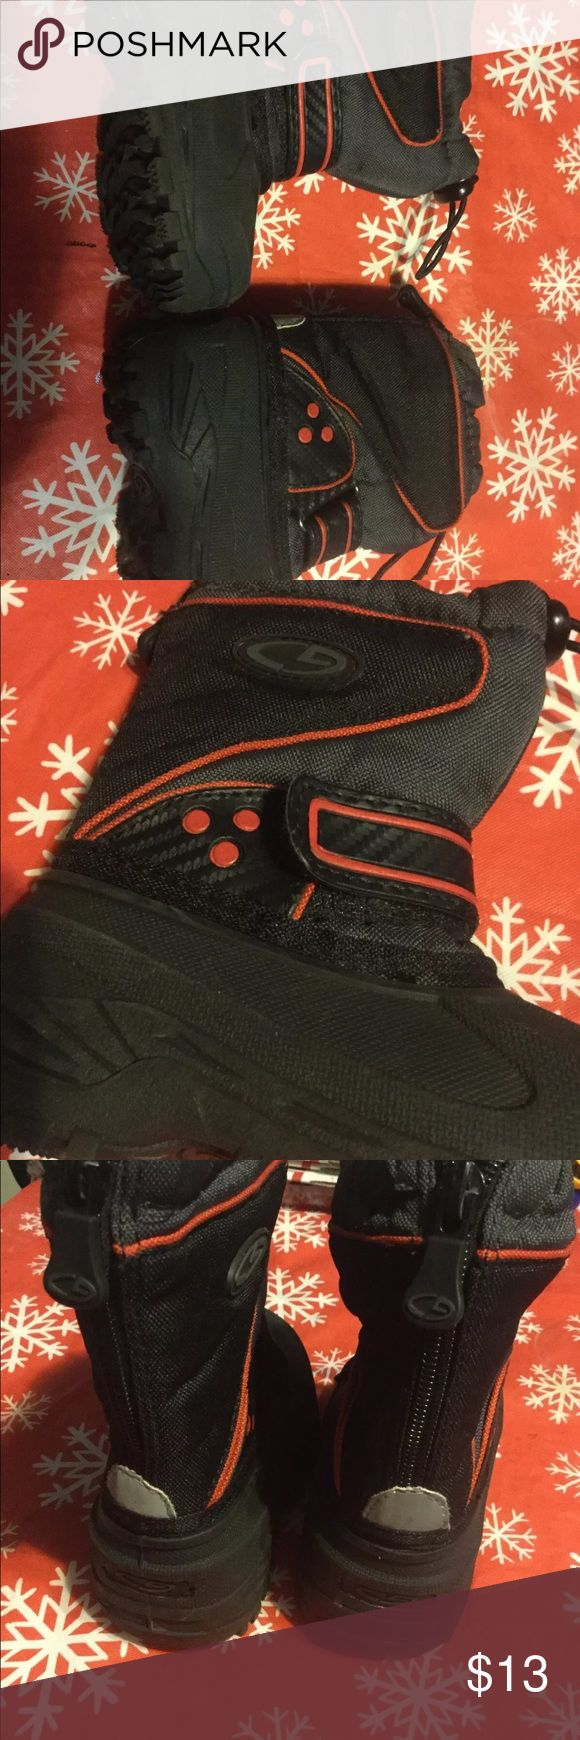 Target ❄️Toddler little Boys Snow Boots easy on Excellent Condition ❄️bundle to save 20%❄️zip up back for easy putting on 🎉 Target Shoes Rain & Snow Boots